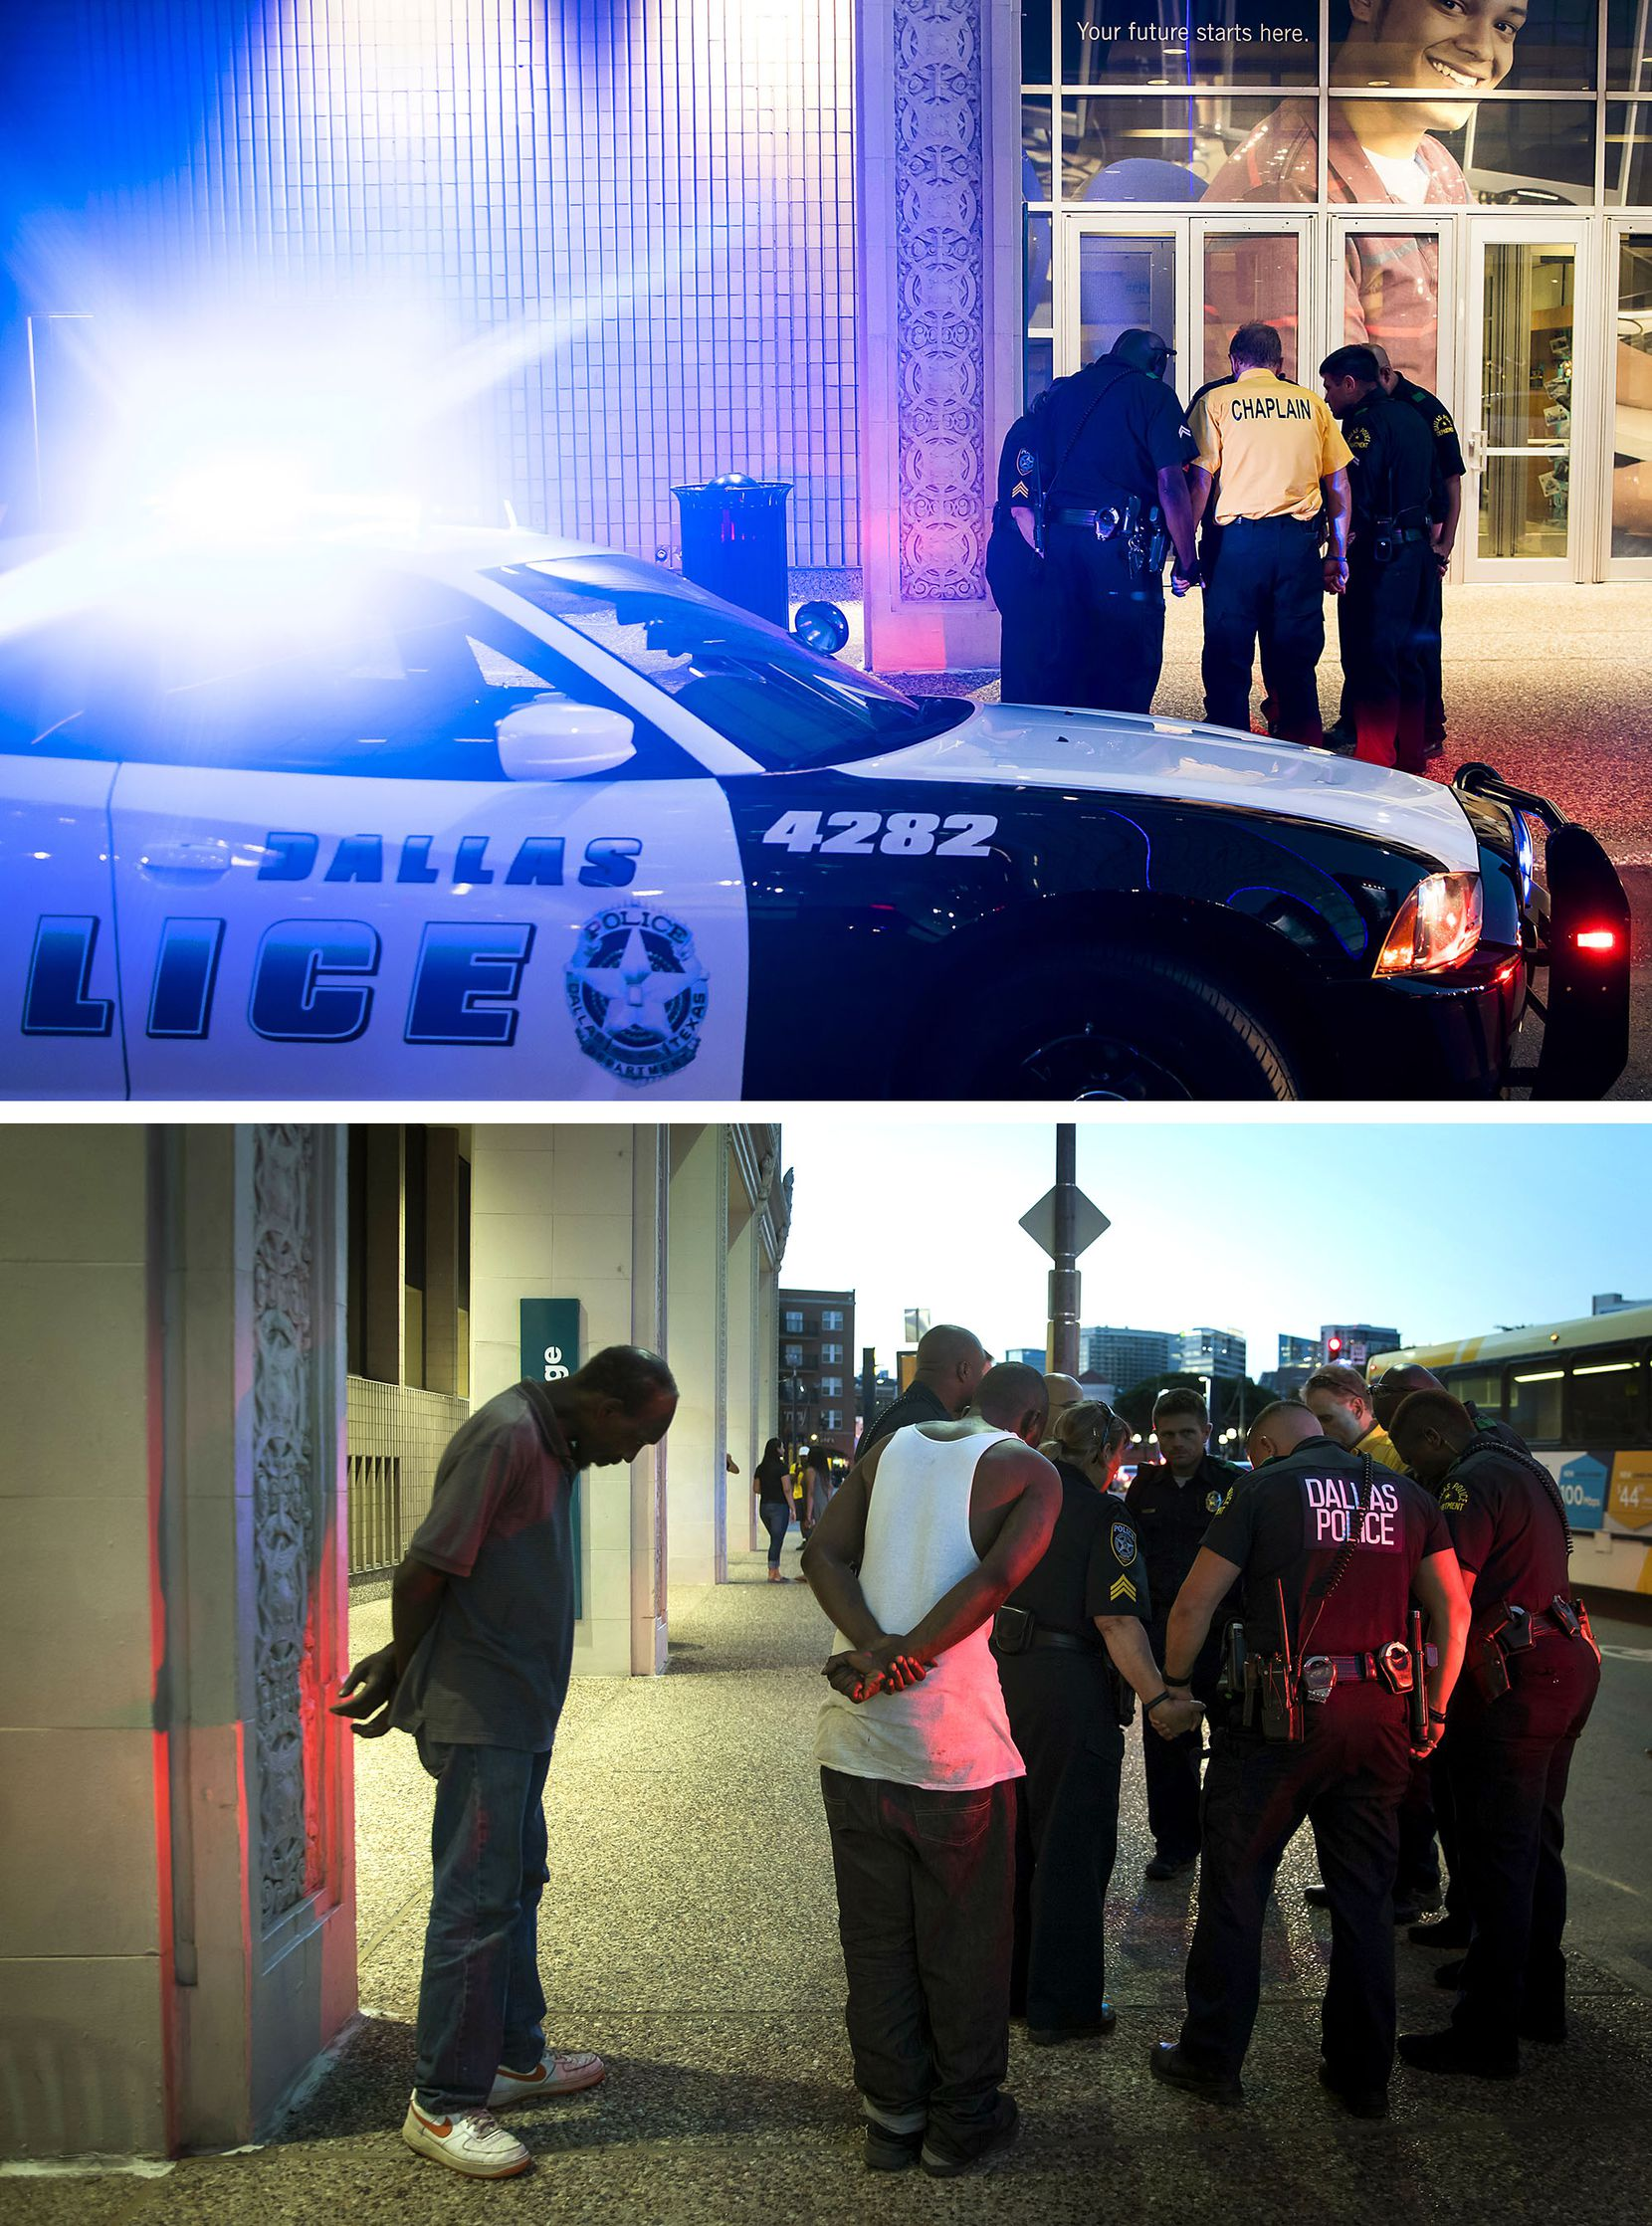 From 8:53 and 8:55 p.m., just a few minutes before the shootings began exactly one year earlier, bystanders joined a small group of Dallas Police Department officers and Dallas County Community College District Police in prayer in front of the Lamar Street entrance to El Centro College.